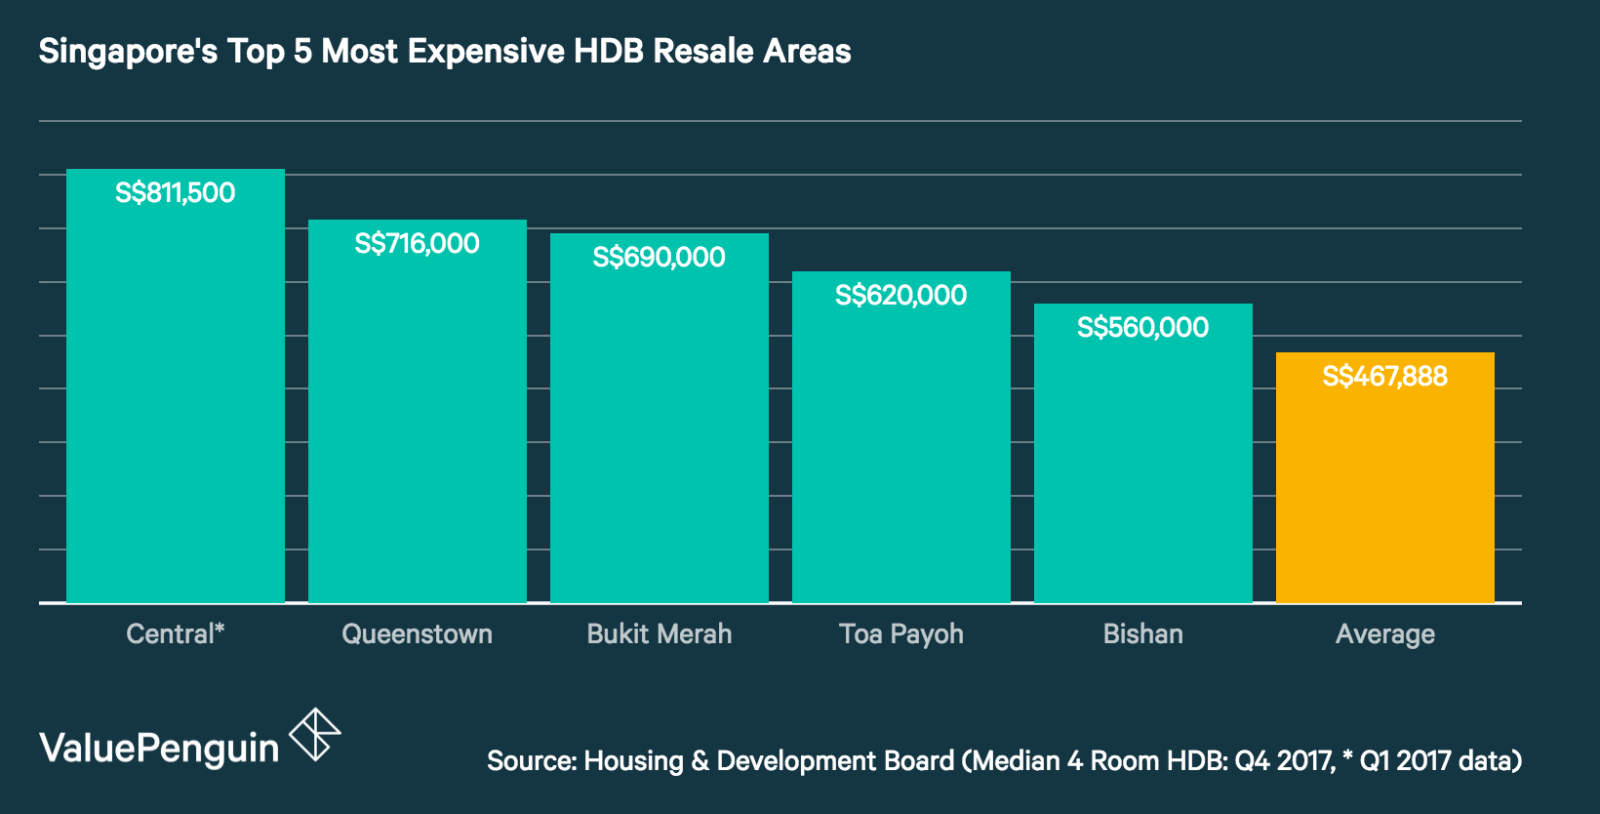 Singapore's Top 5 Most Expensive HDB Resale Areas (4 Room HDB)